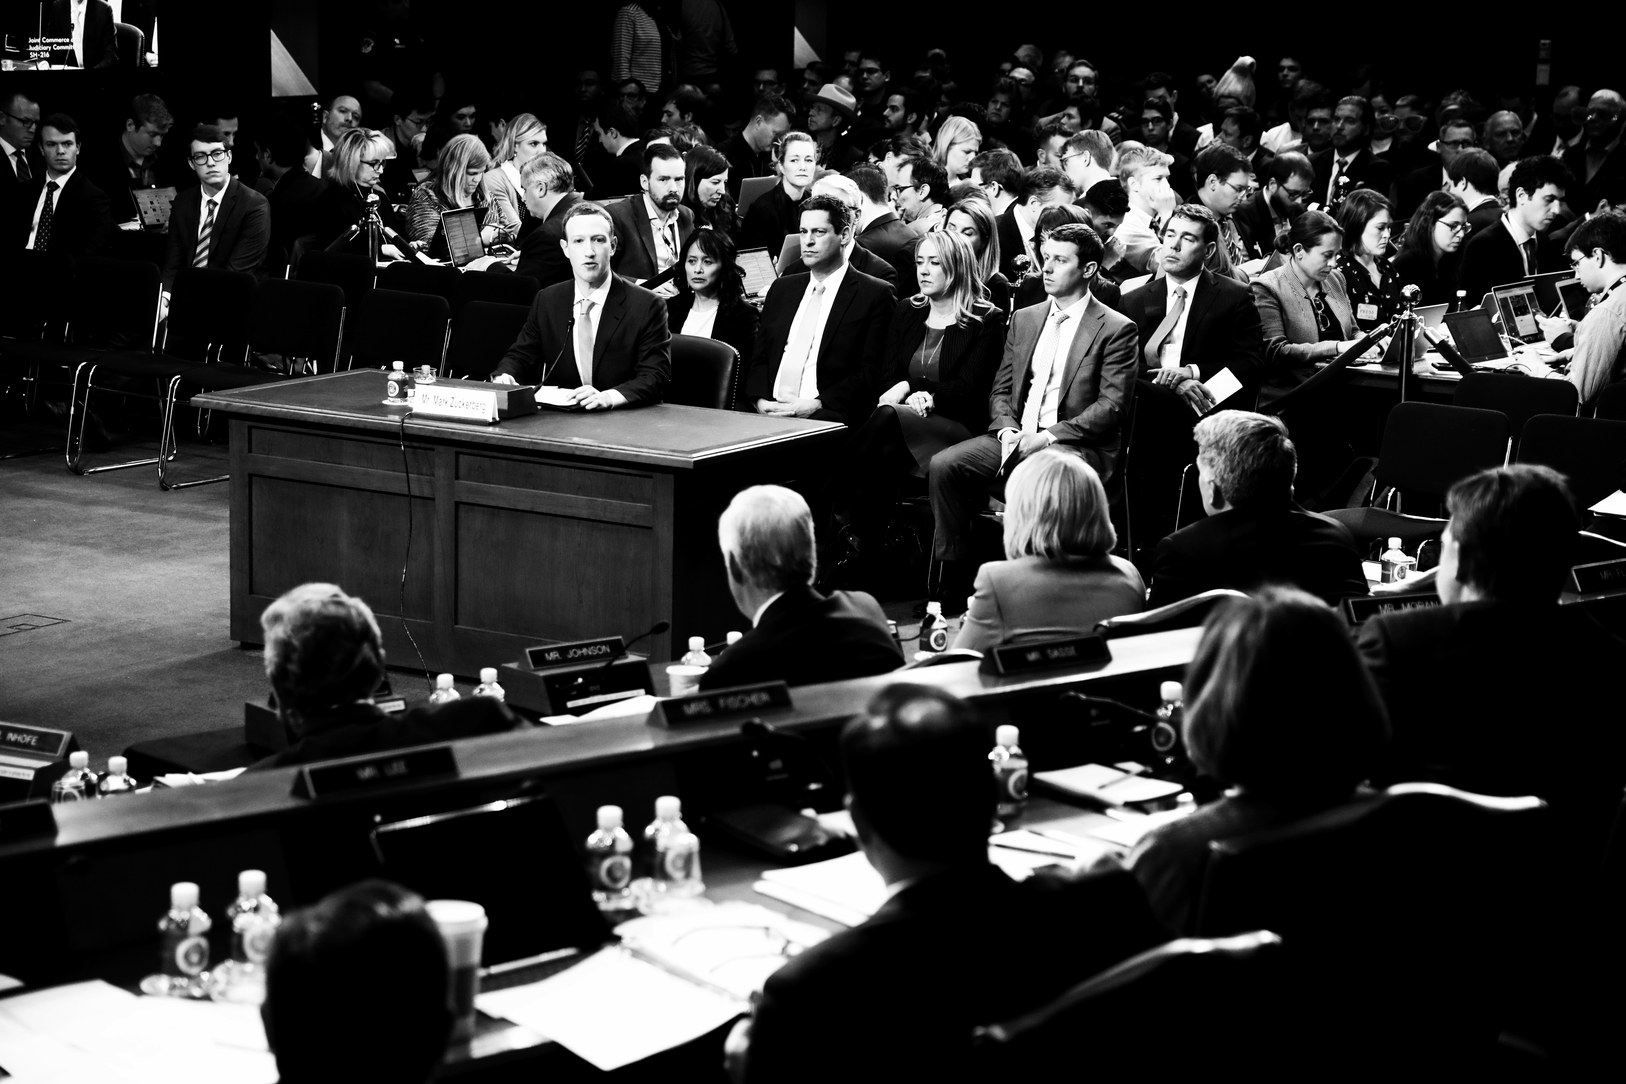 Mark Zuckerberg, the C.E.O. of Facebook, testifying before Congress about data privacy and security, in April.   Photograph by Mark Peterson / Redux for The New Yorker